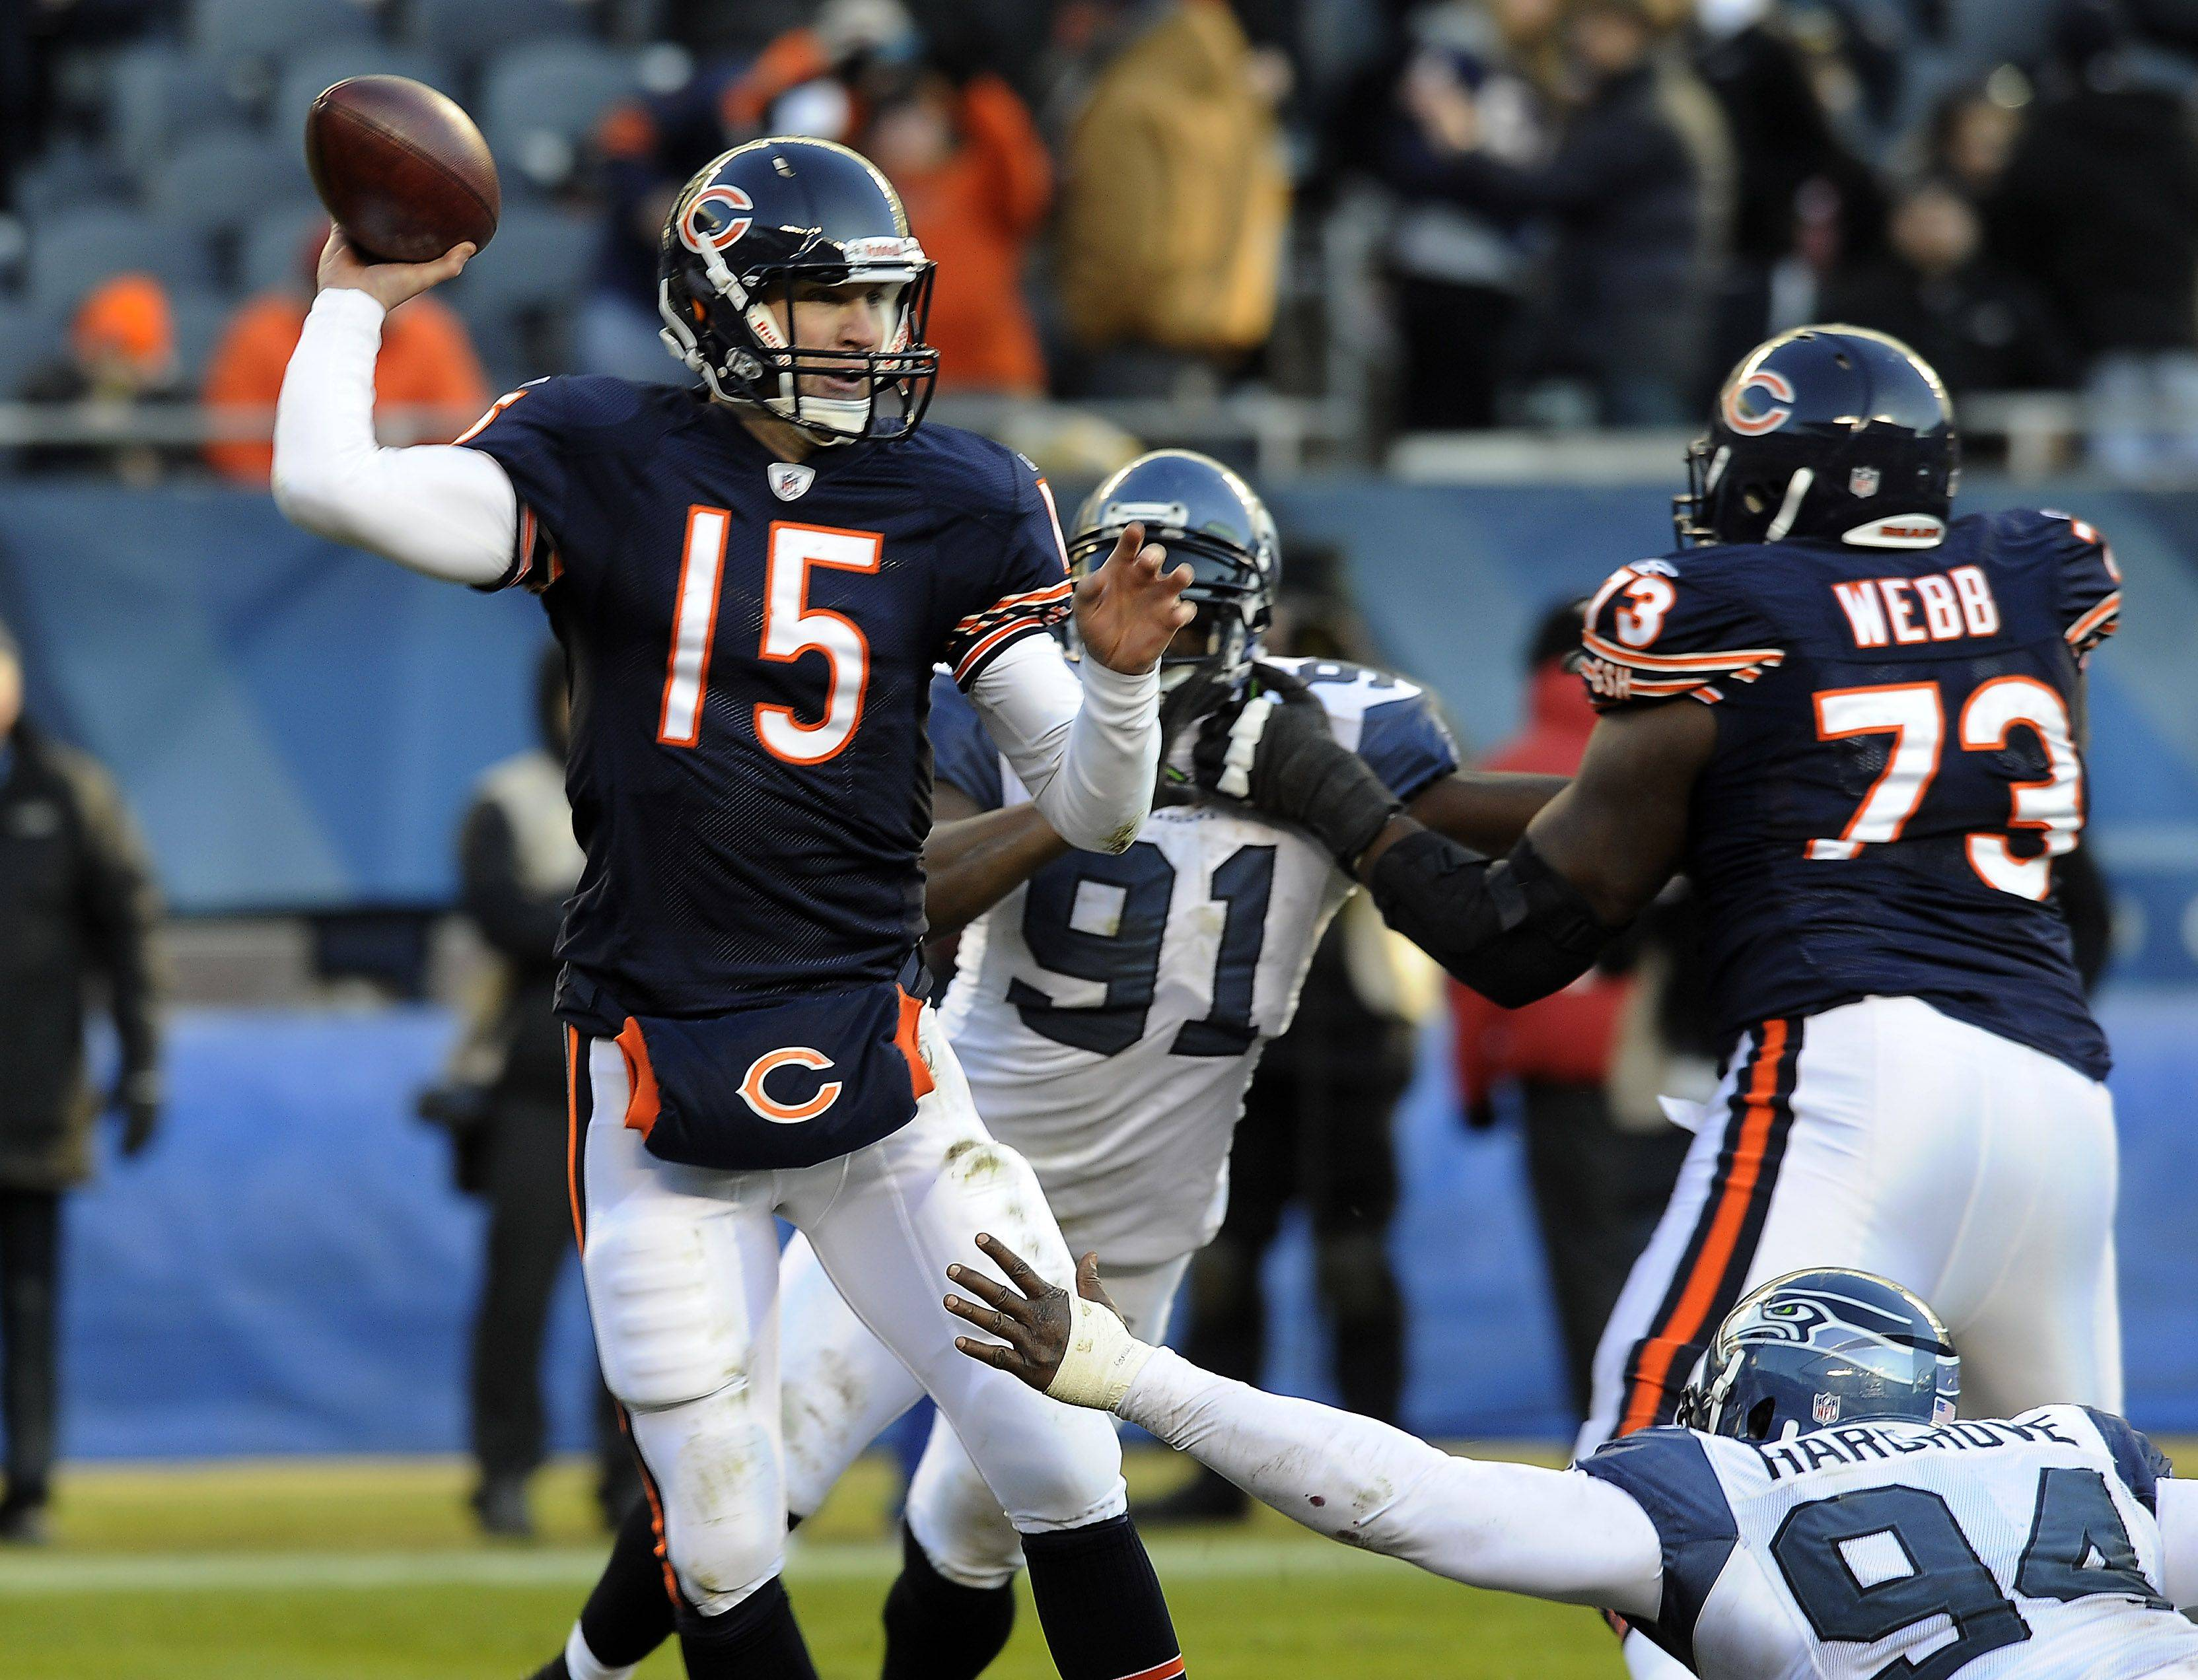 Does it really matter who starts at QB for Bears?